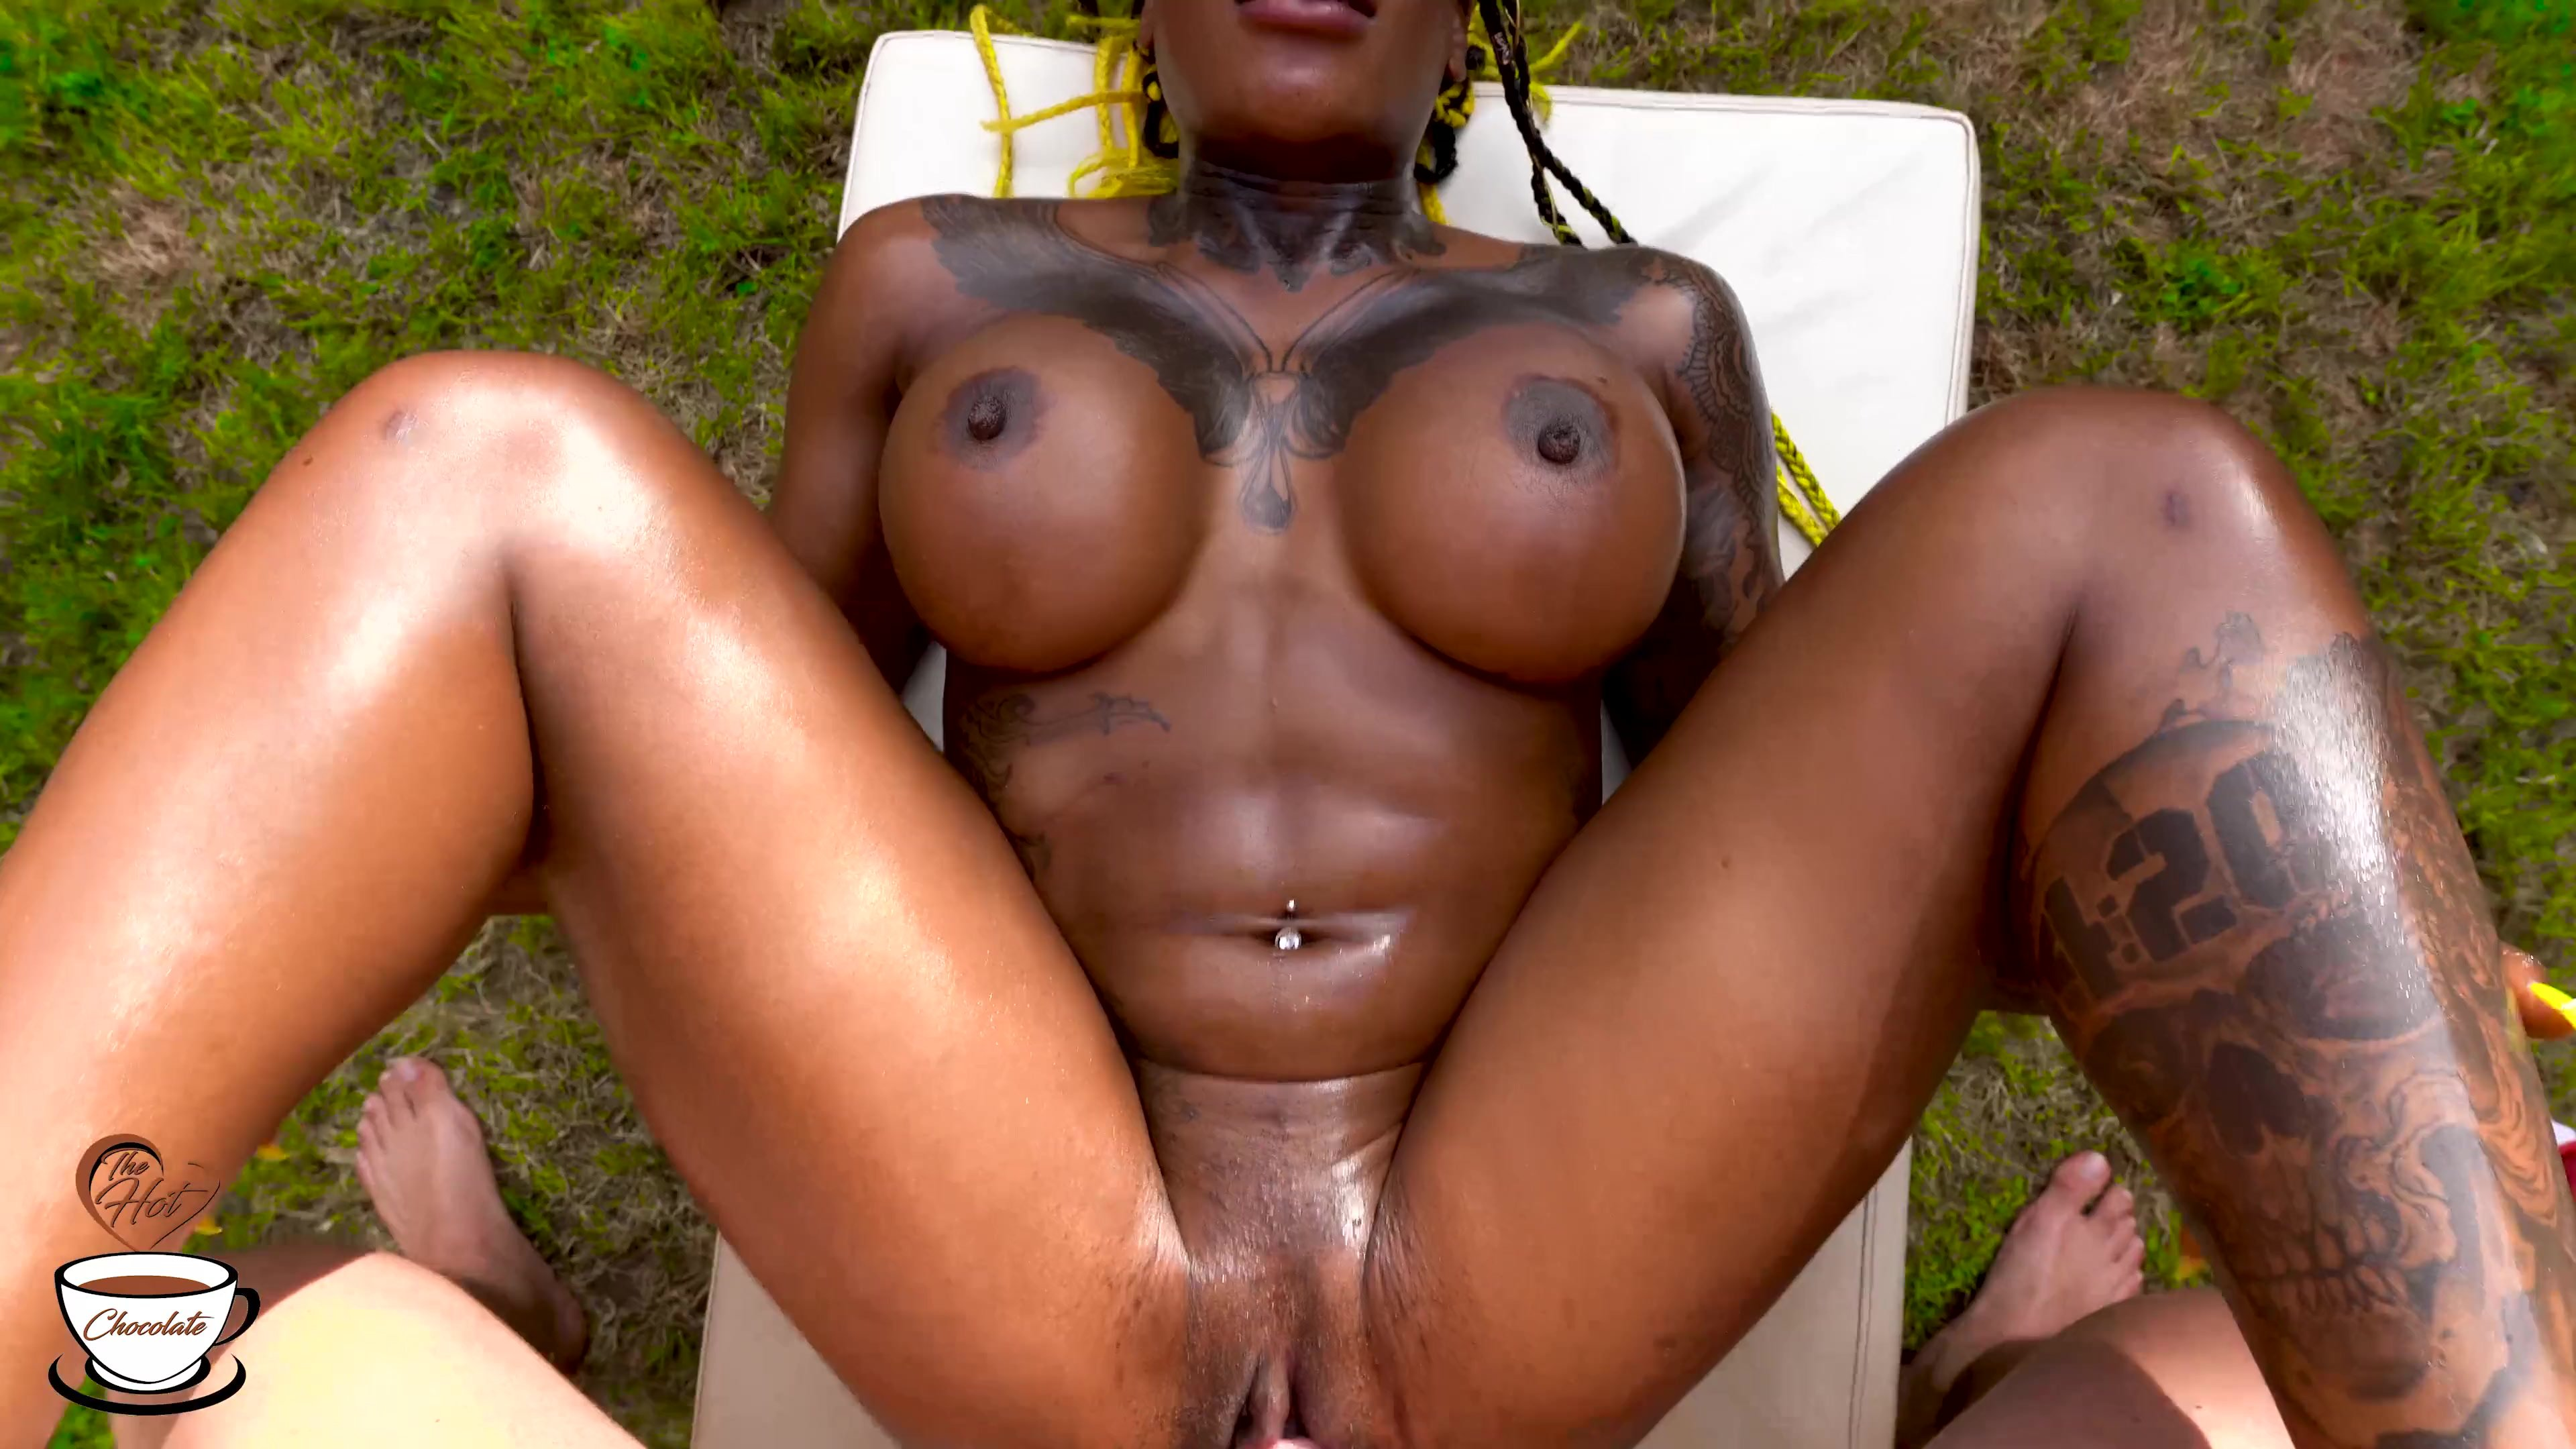 CREAMPIE for hot black girl at the pool (short version) - TheHotChocolate